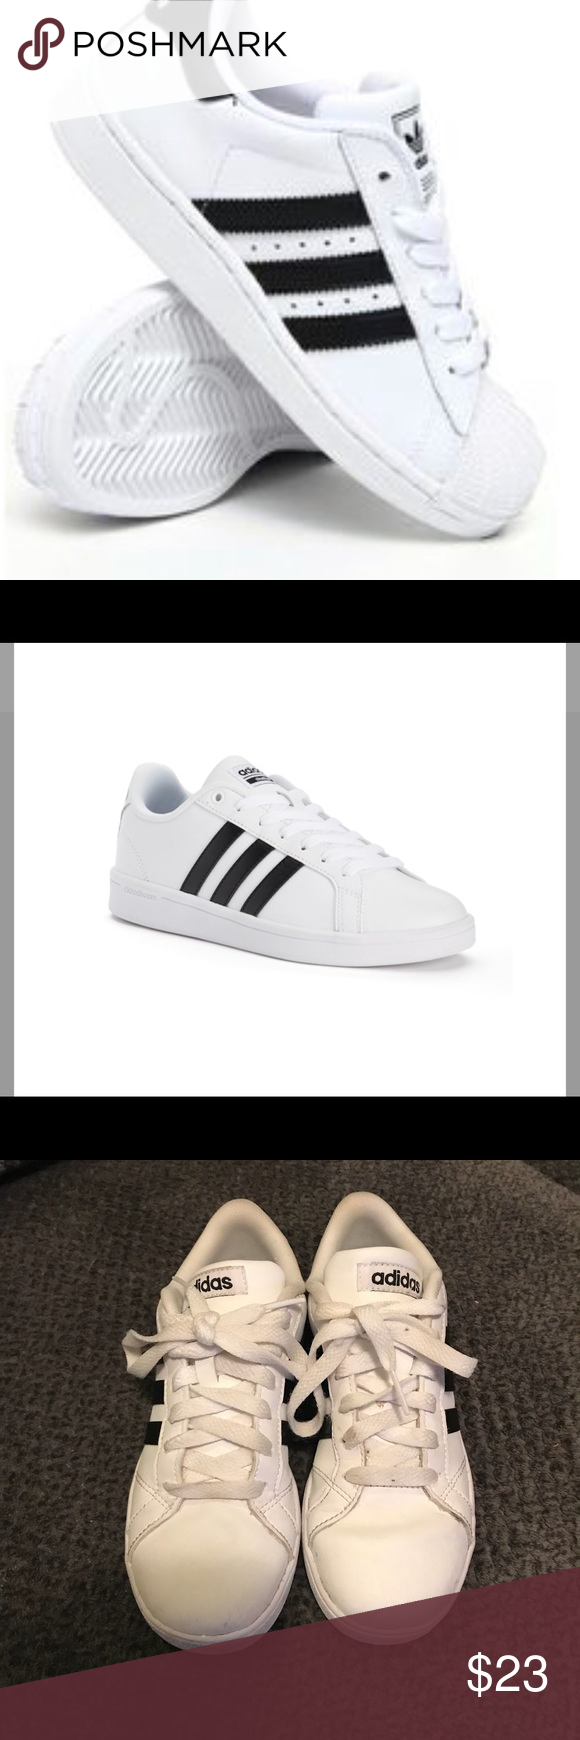 buy popular dcf8c 0bc9c Girls Adidas Neo white and black tennis shoes Girls Adidas Girls Neo  Baseline Tennis Shoes. EUC , my daughter only worn a few times, she out  grew them.